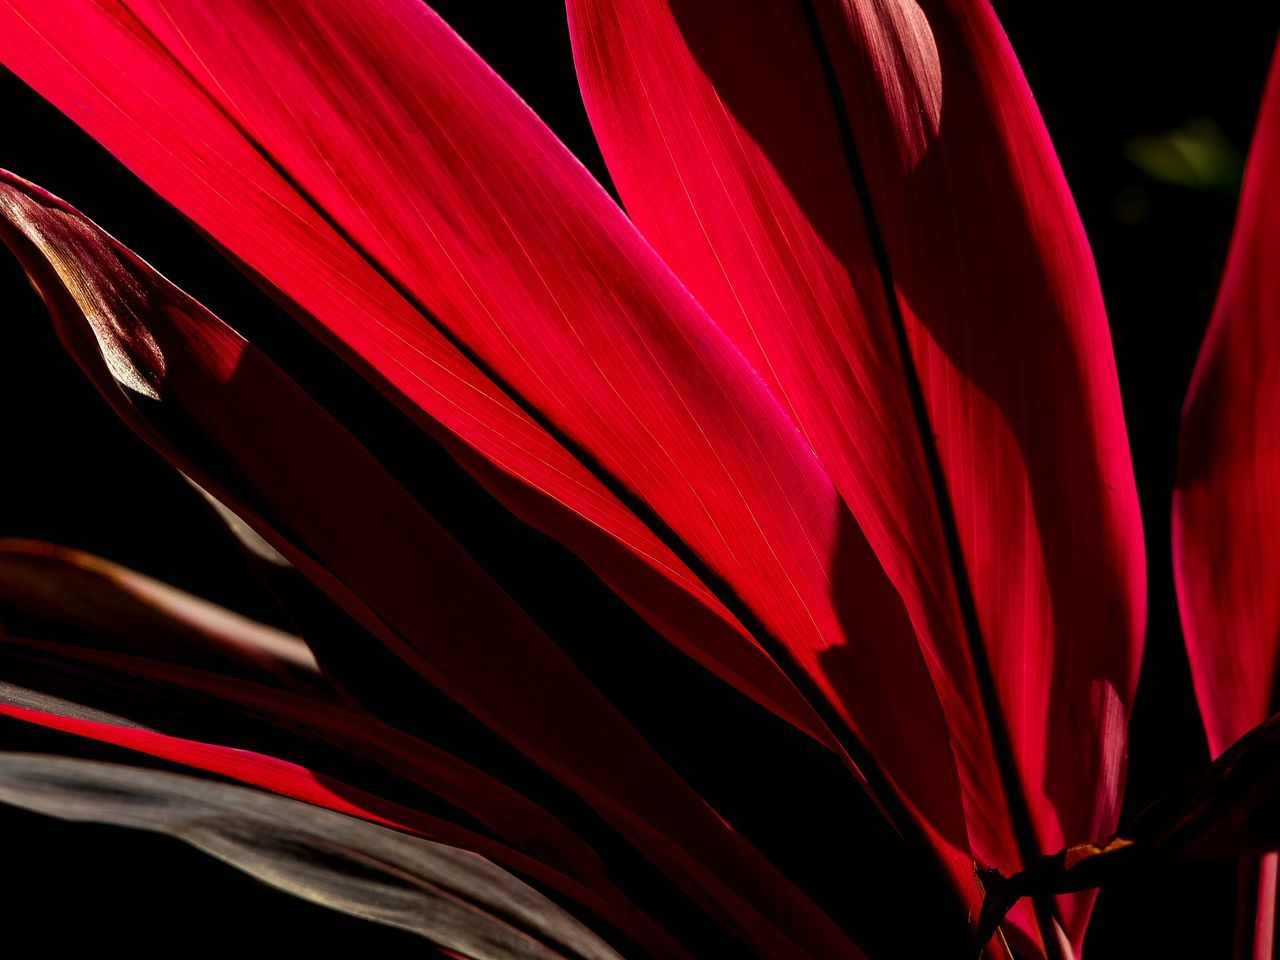 Leafs Leaf Veins Red Color Red Beauty In Nature Close-up Growth Nature Full Frame Freshness Tranquil Scene The Week Of Eyeem My Unique Style EyeEm GalleryOutdoors Illuminated Master Class Abstract Expressionism Silhouette_collection Silouette And Shadows Original Experiences Abstract Photography Artistic Expression Backgrounds